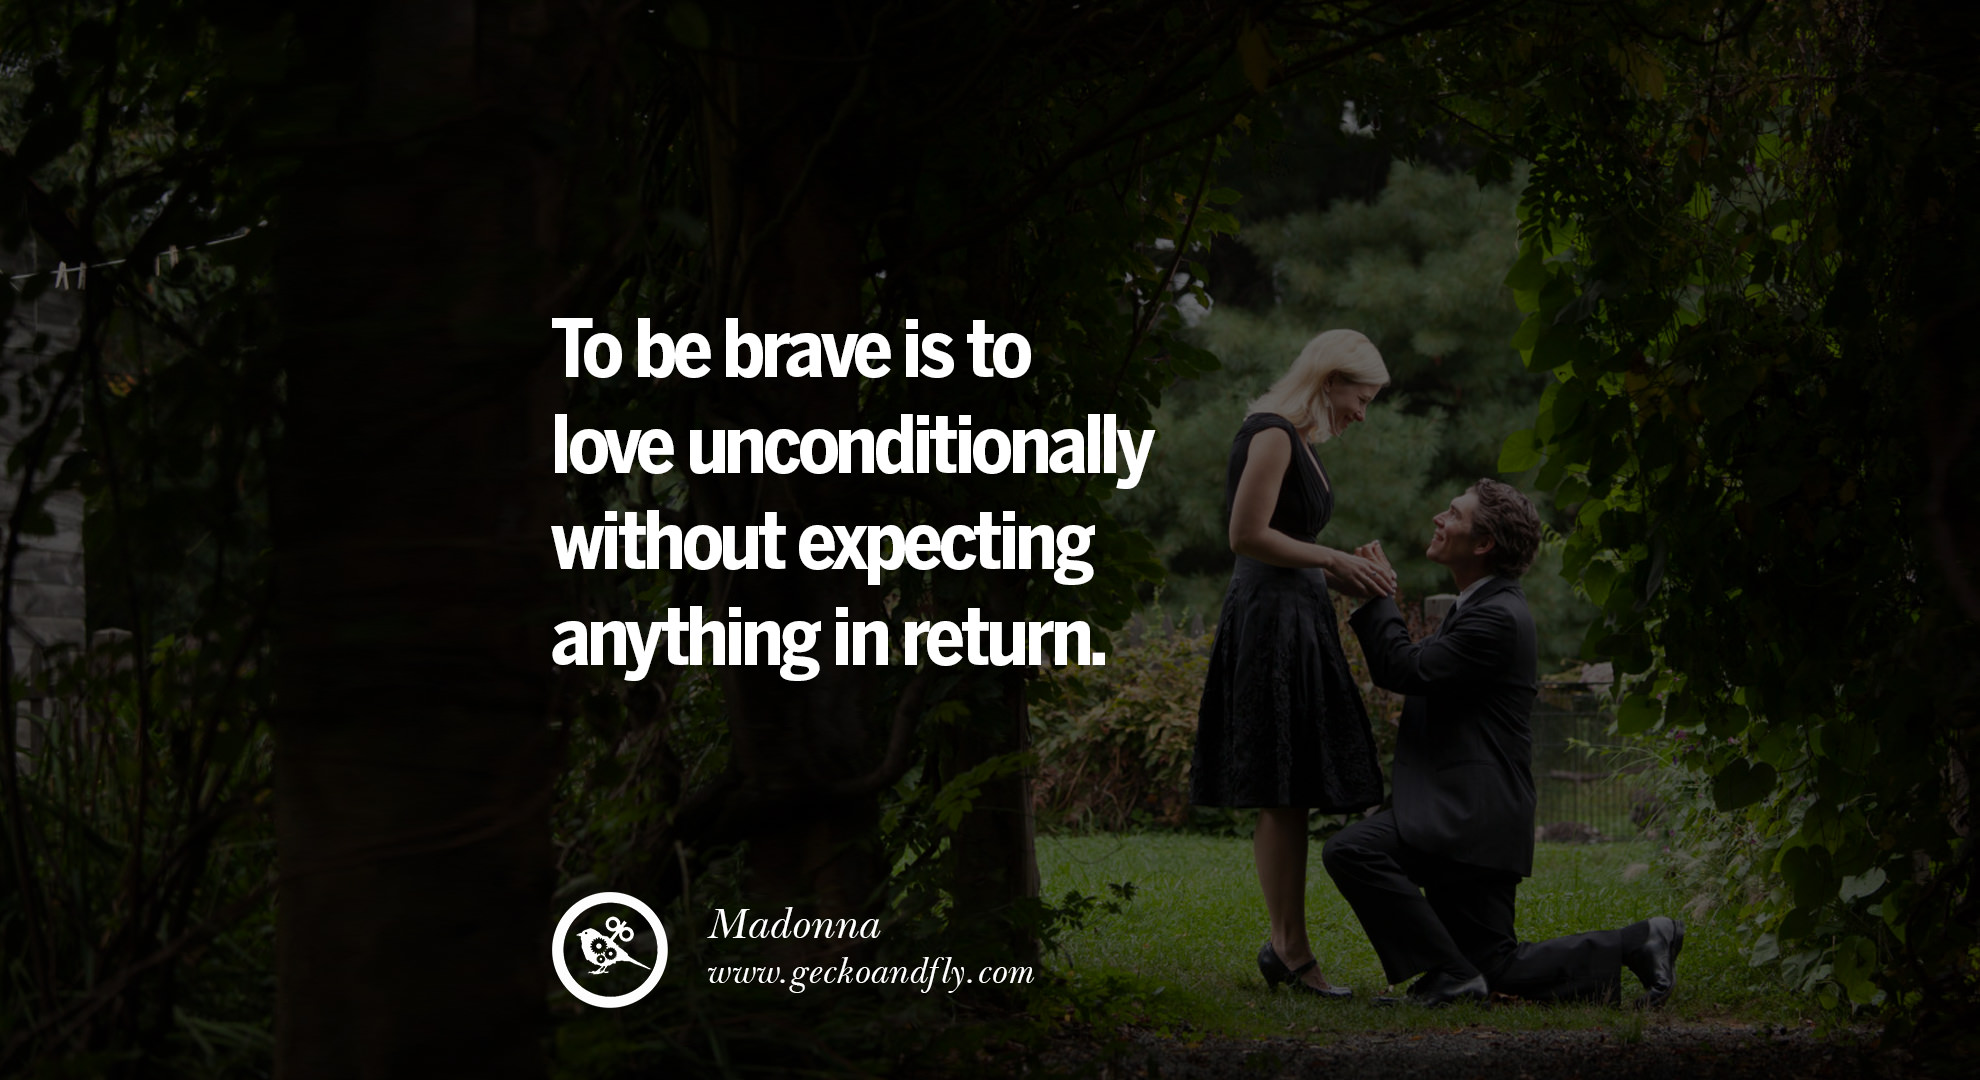 Girlfriend To Be Brave Is To Love Unconditionally Without Expecting Anything In Return Geckoandfly 40 Romantic Quotes About Love Life Marriage And Relationships